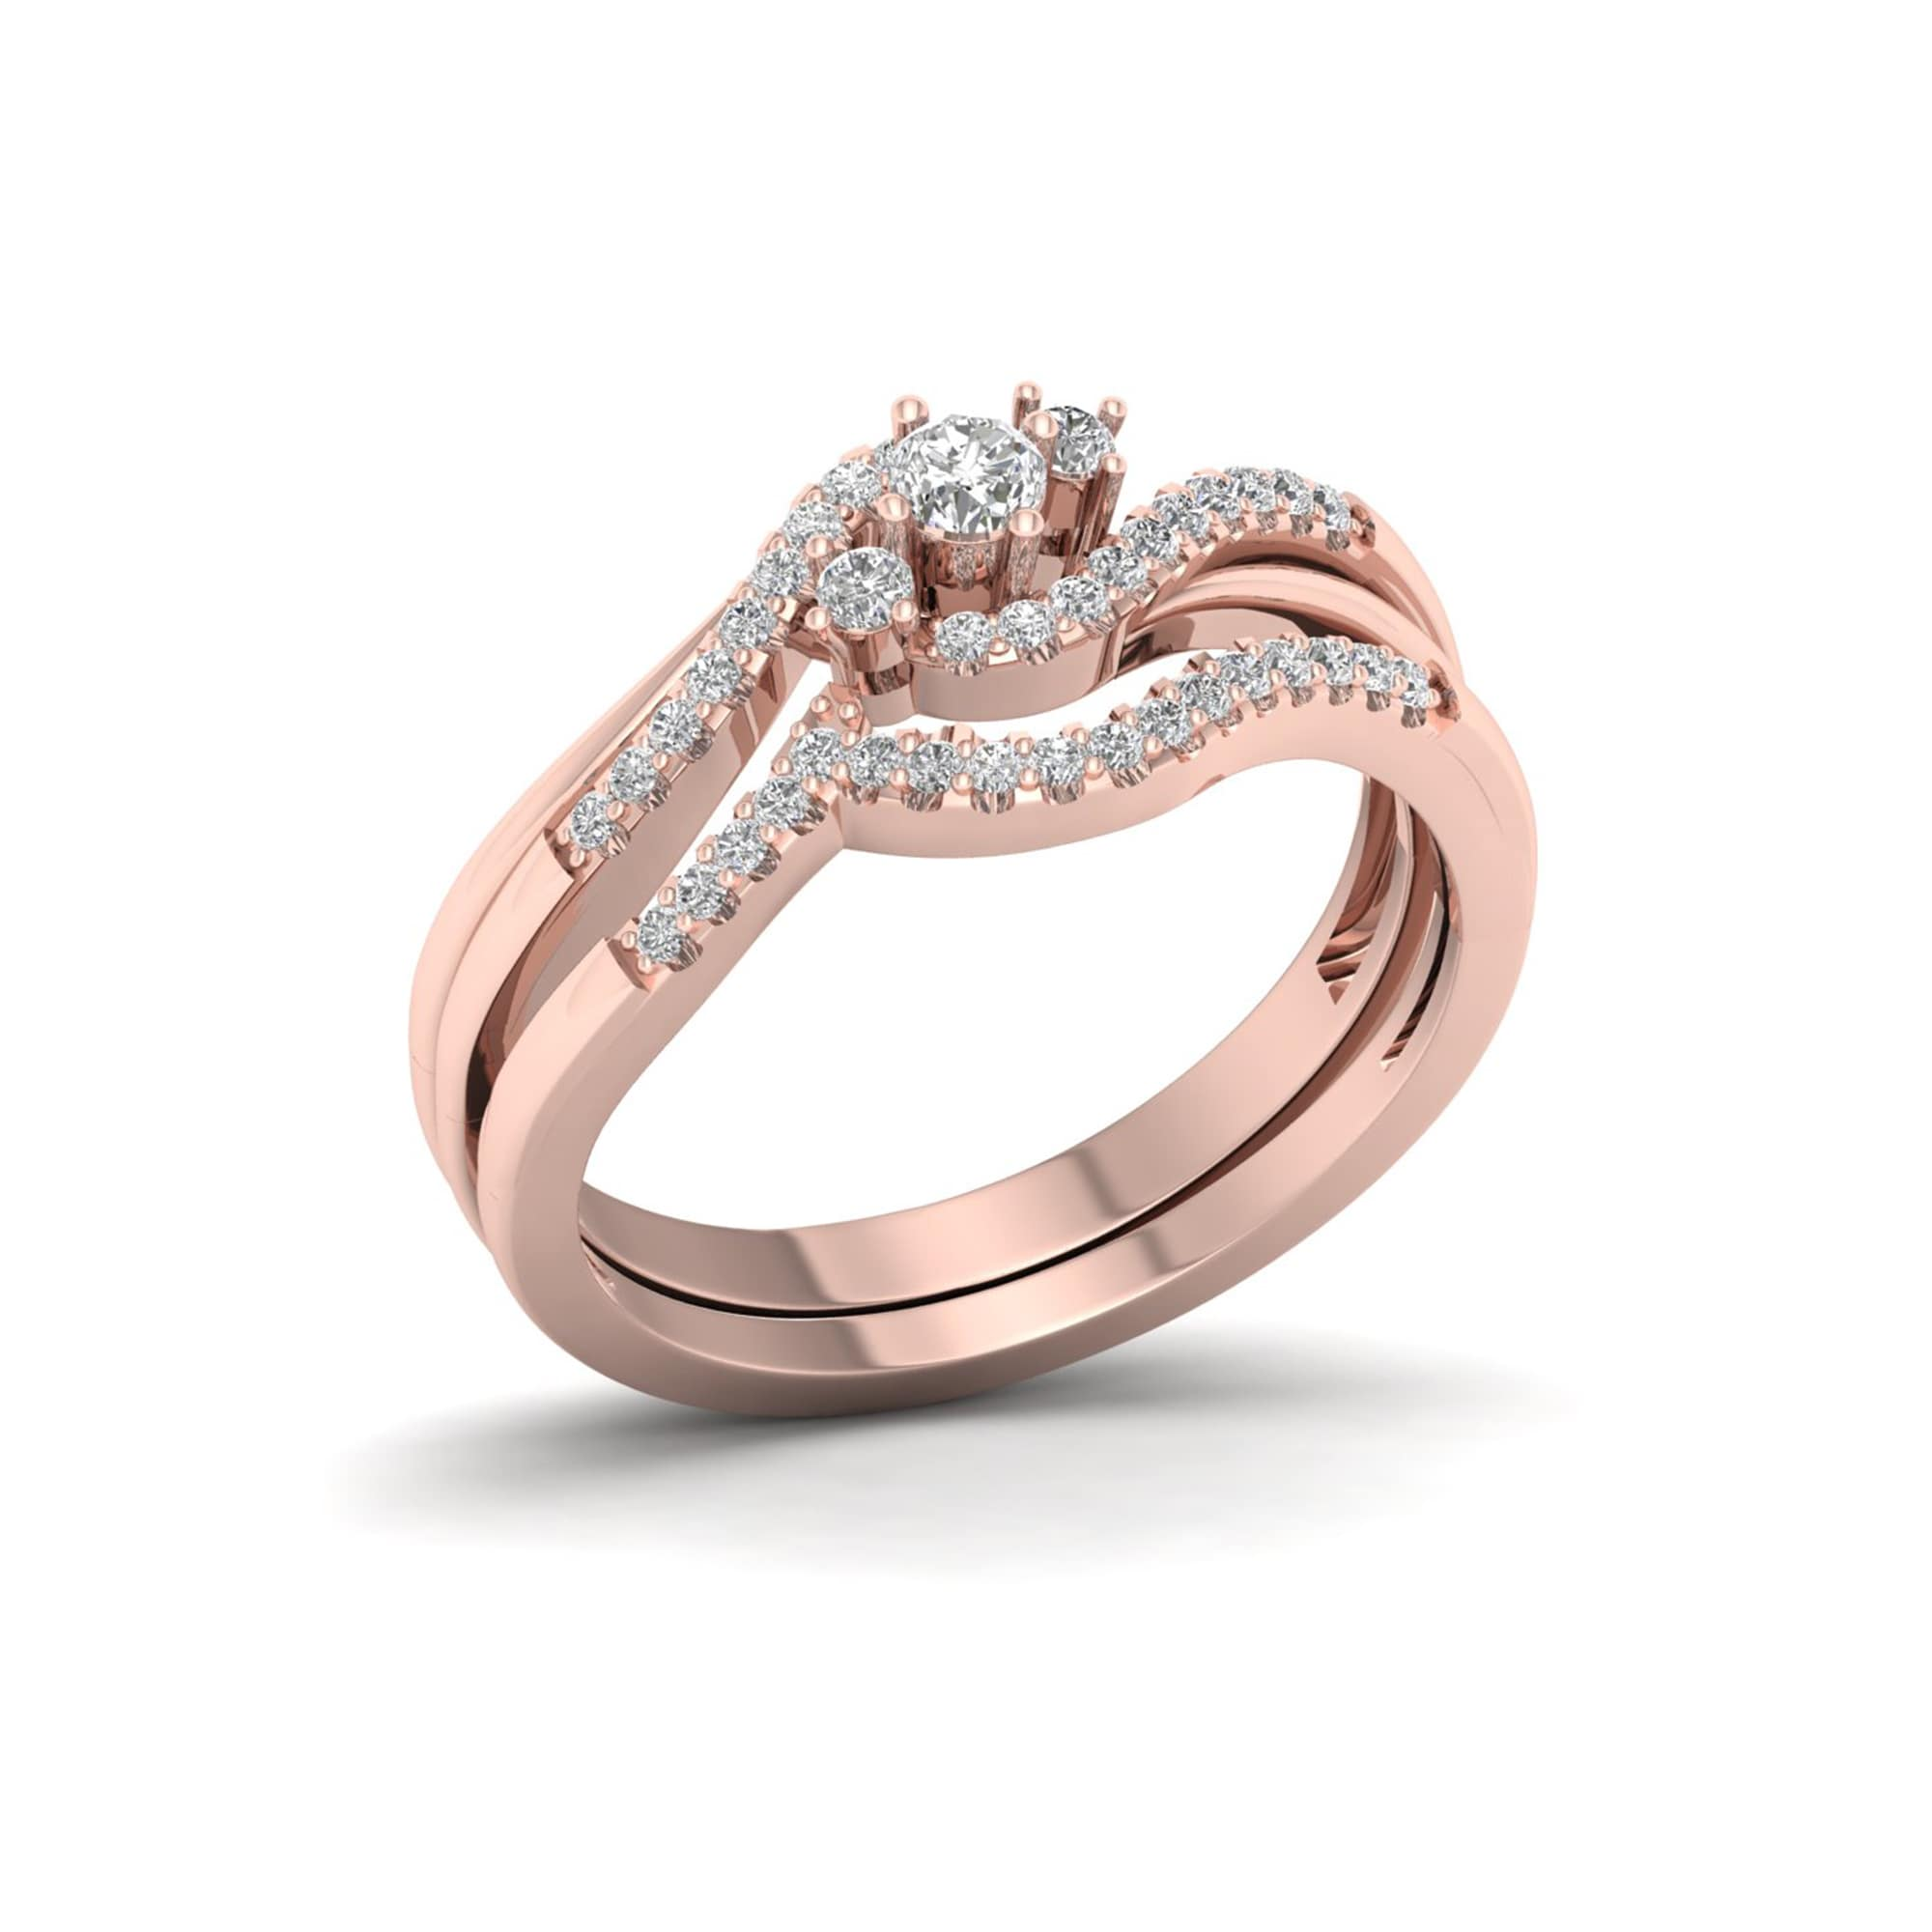 bypass jewelry studio a design main wedding rings engagement kevin